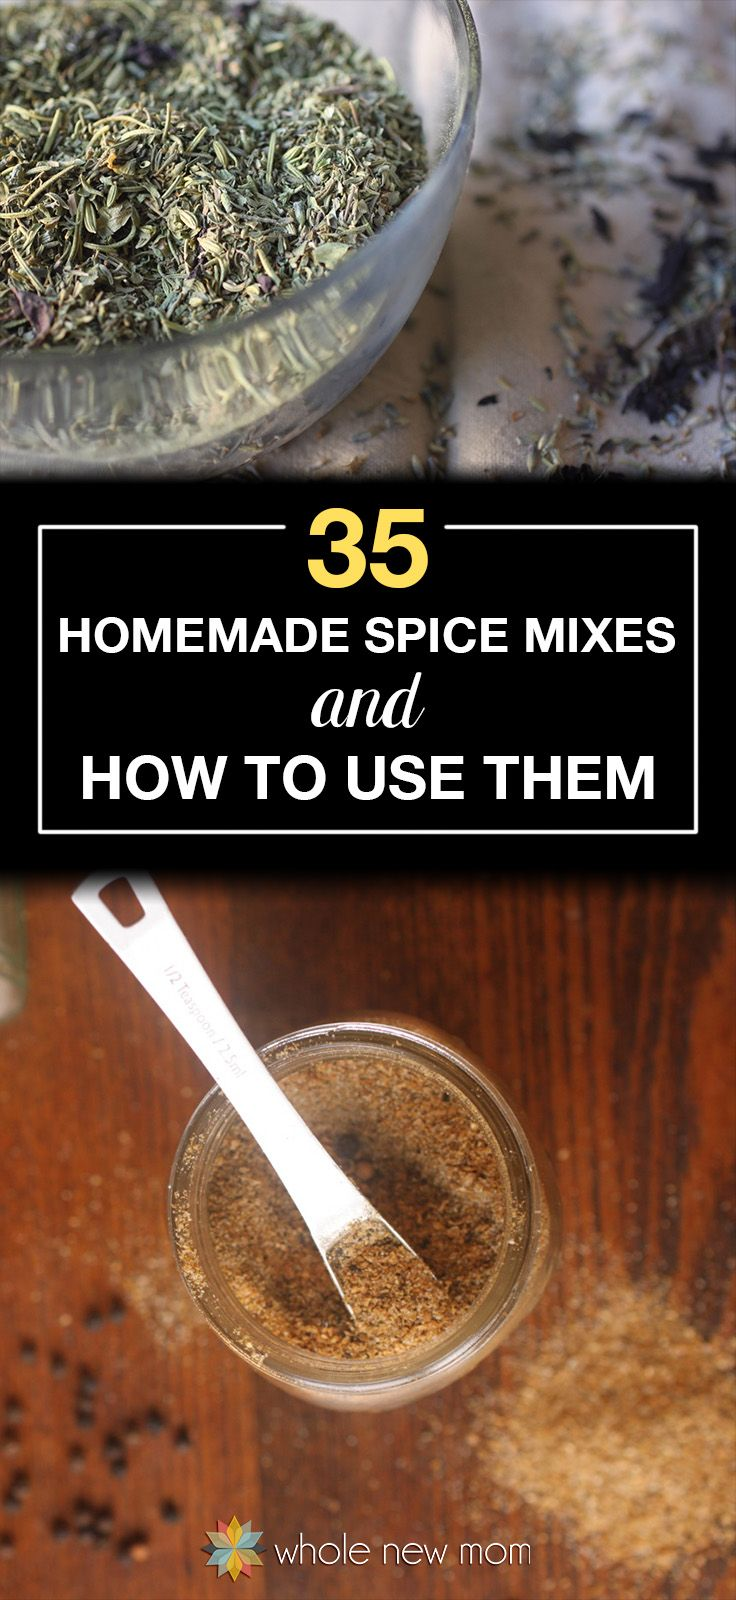 No need to buy spice mixes when you can make them yourself! From curry power to taco seasoning these homemade spice mixes are free of additives. Great ways to use them too!